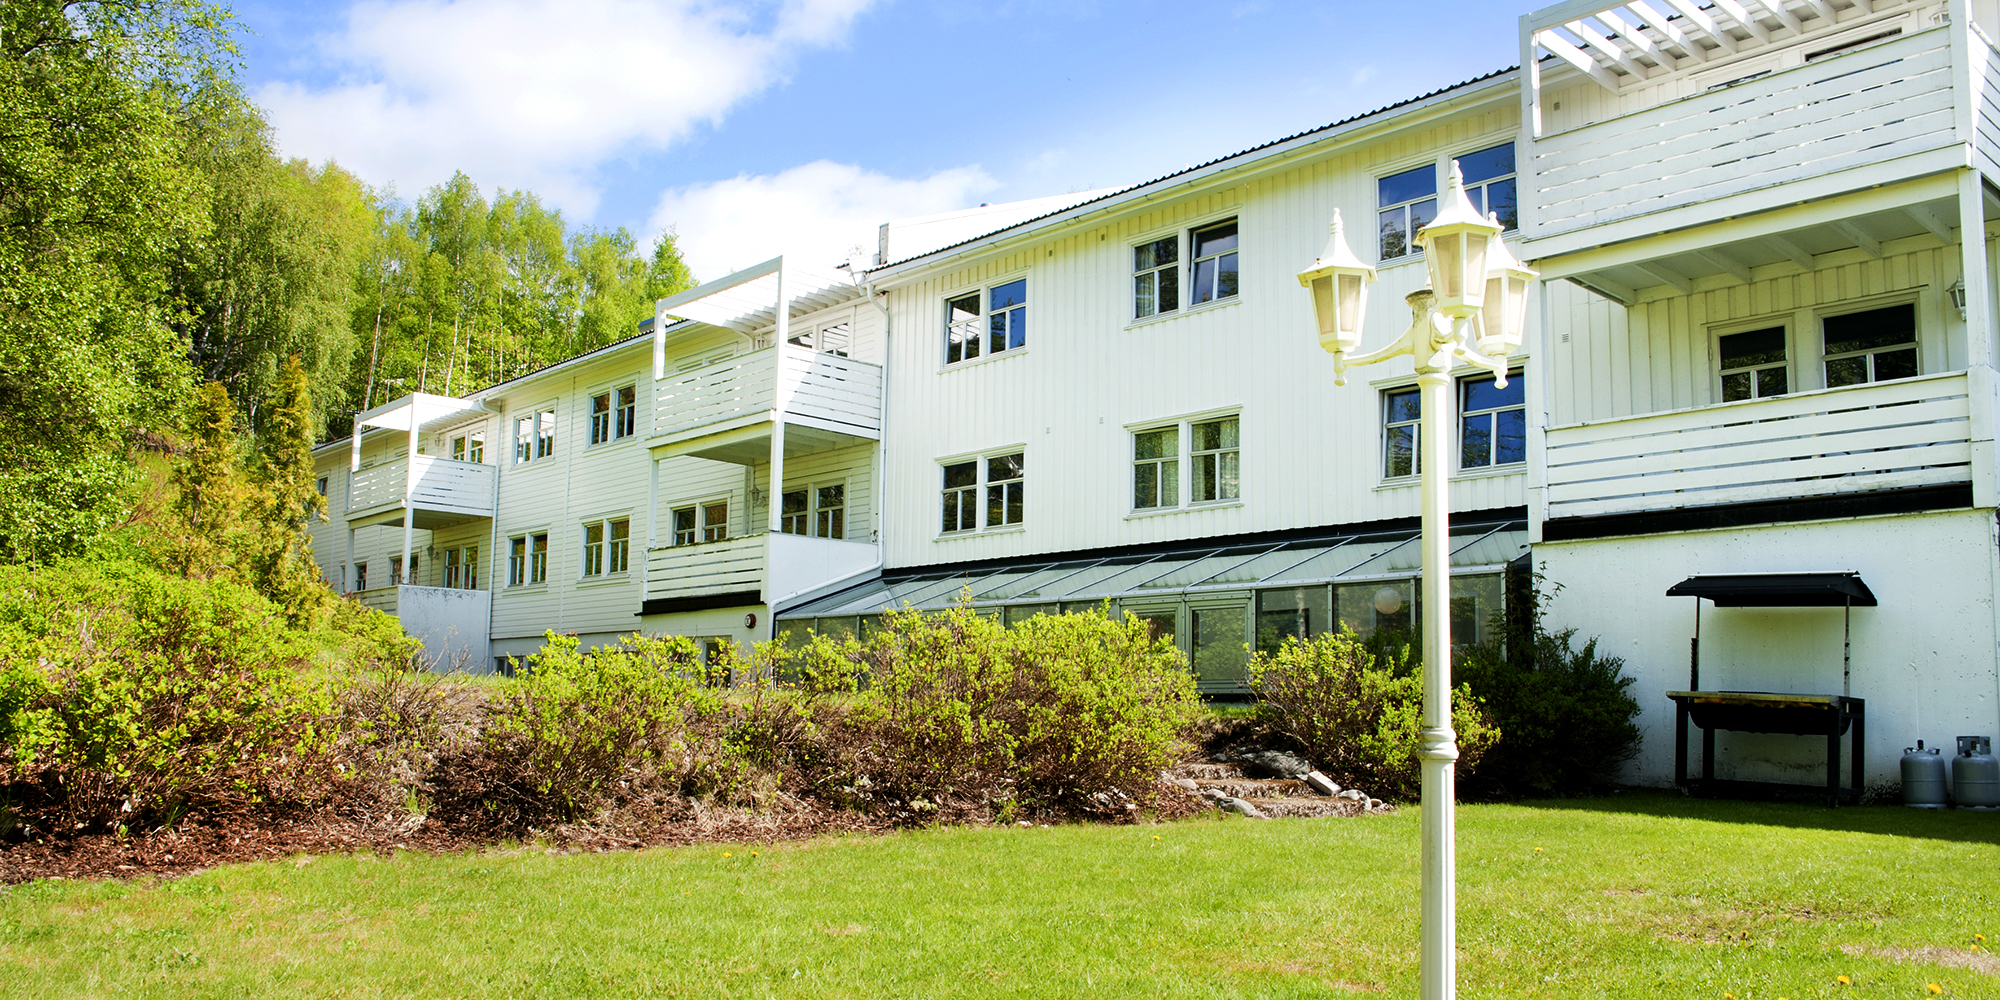 Best Western Tingvold Park Hotell - hotell med hage. Copyright: Best Western Tingvold Park Hotell